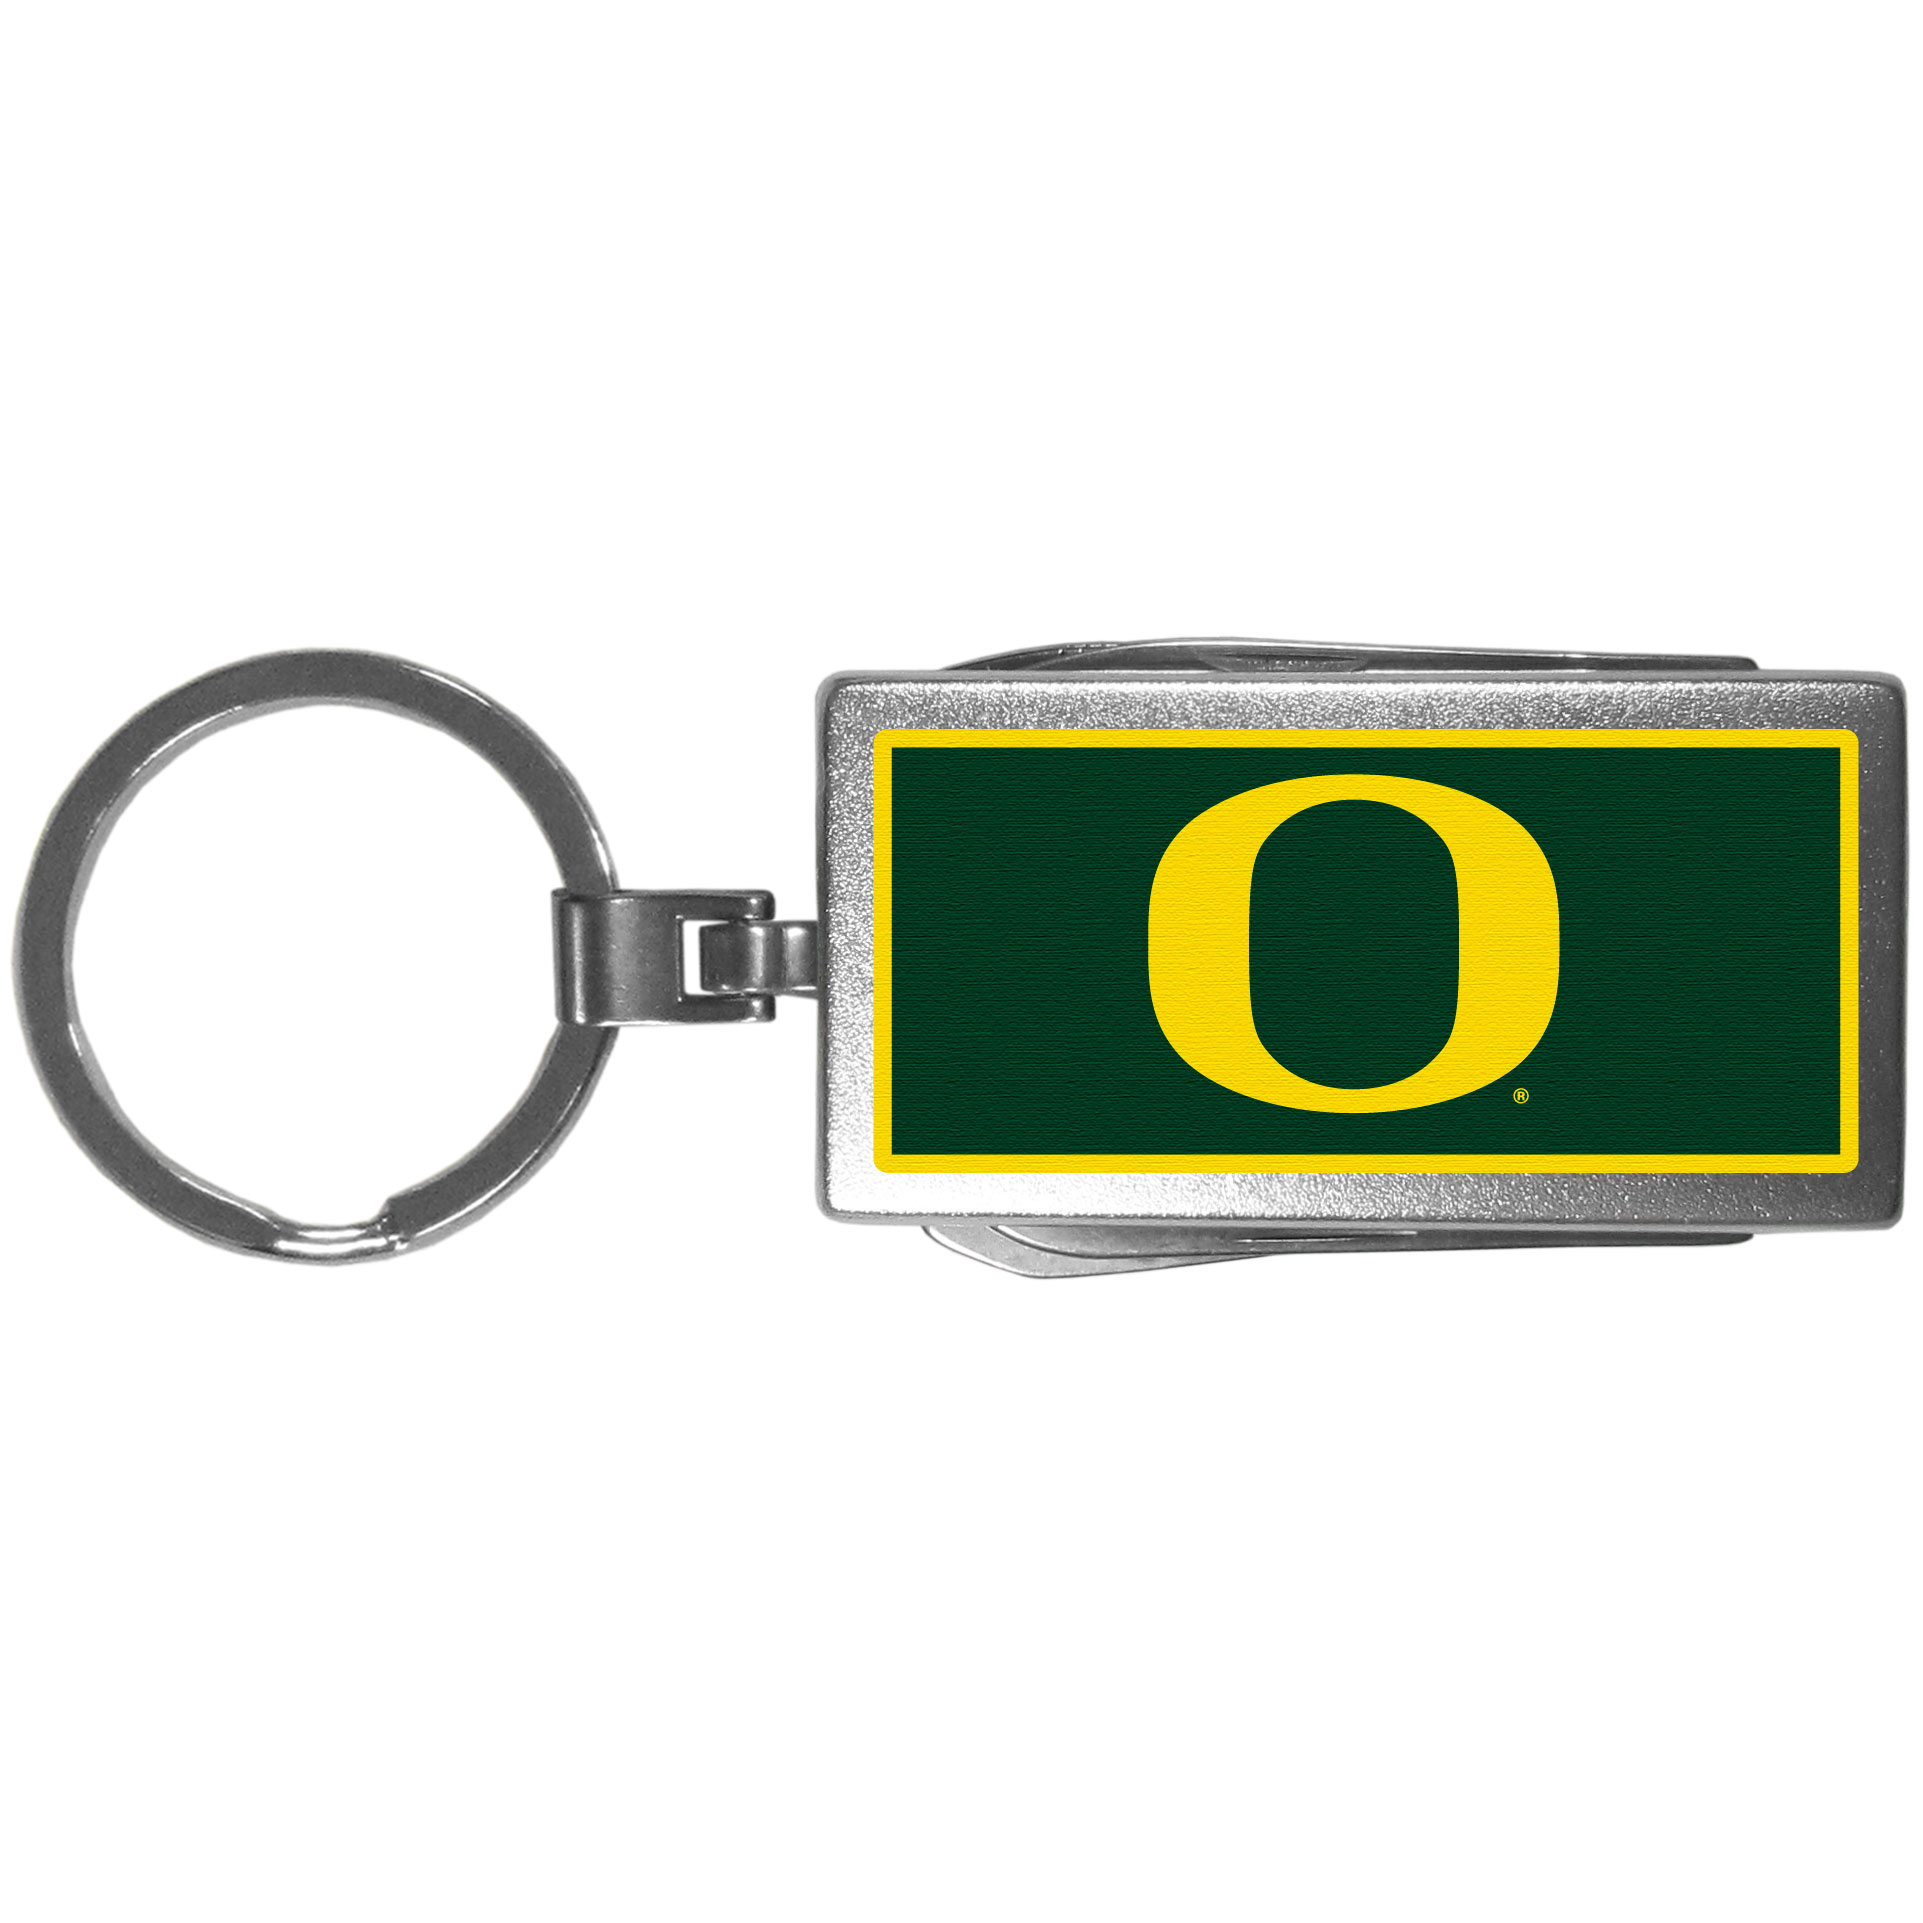 Oregon Ducks Multi-tool Key Chain, Logo - Be the hero at the tailgate, camping, or on a Friday night with your Oregon Ducks Multi-Tool Keychain which comes complete with bottle opener, scissors, knife, nail file and screw driver. Be it opening a package or a beverage Siskiyou's Multi-Tool Keychain goes wherever your keys do. The keychain hangs at 4 inches long when closed.